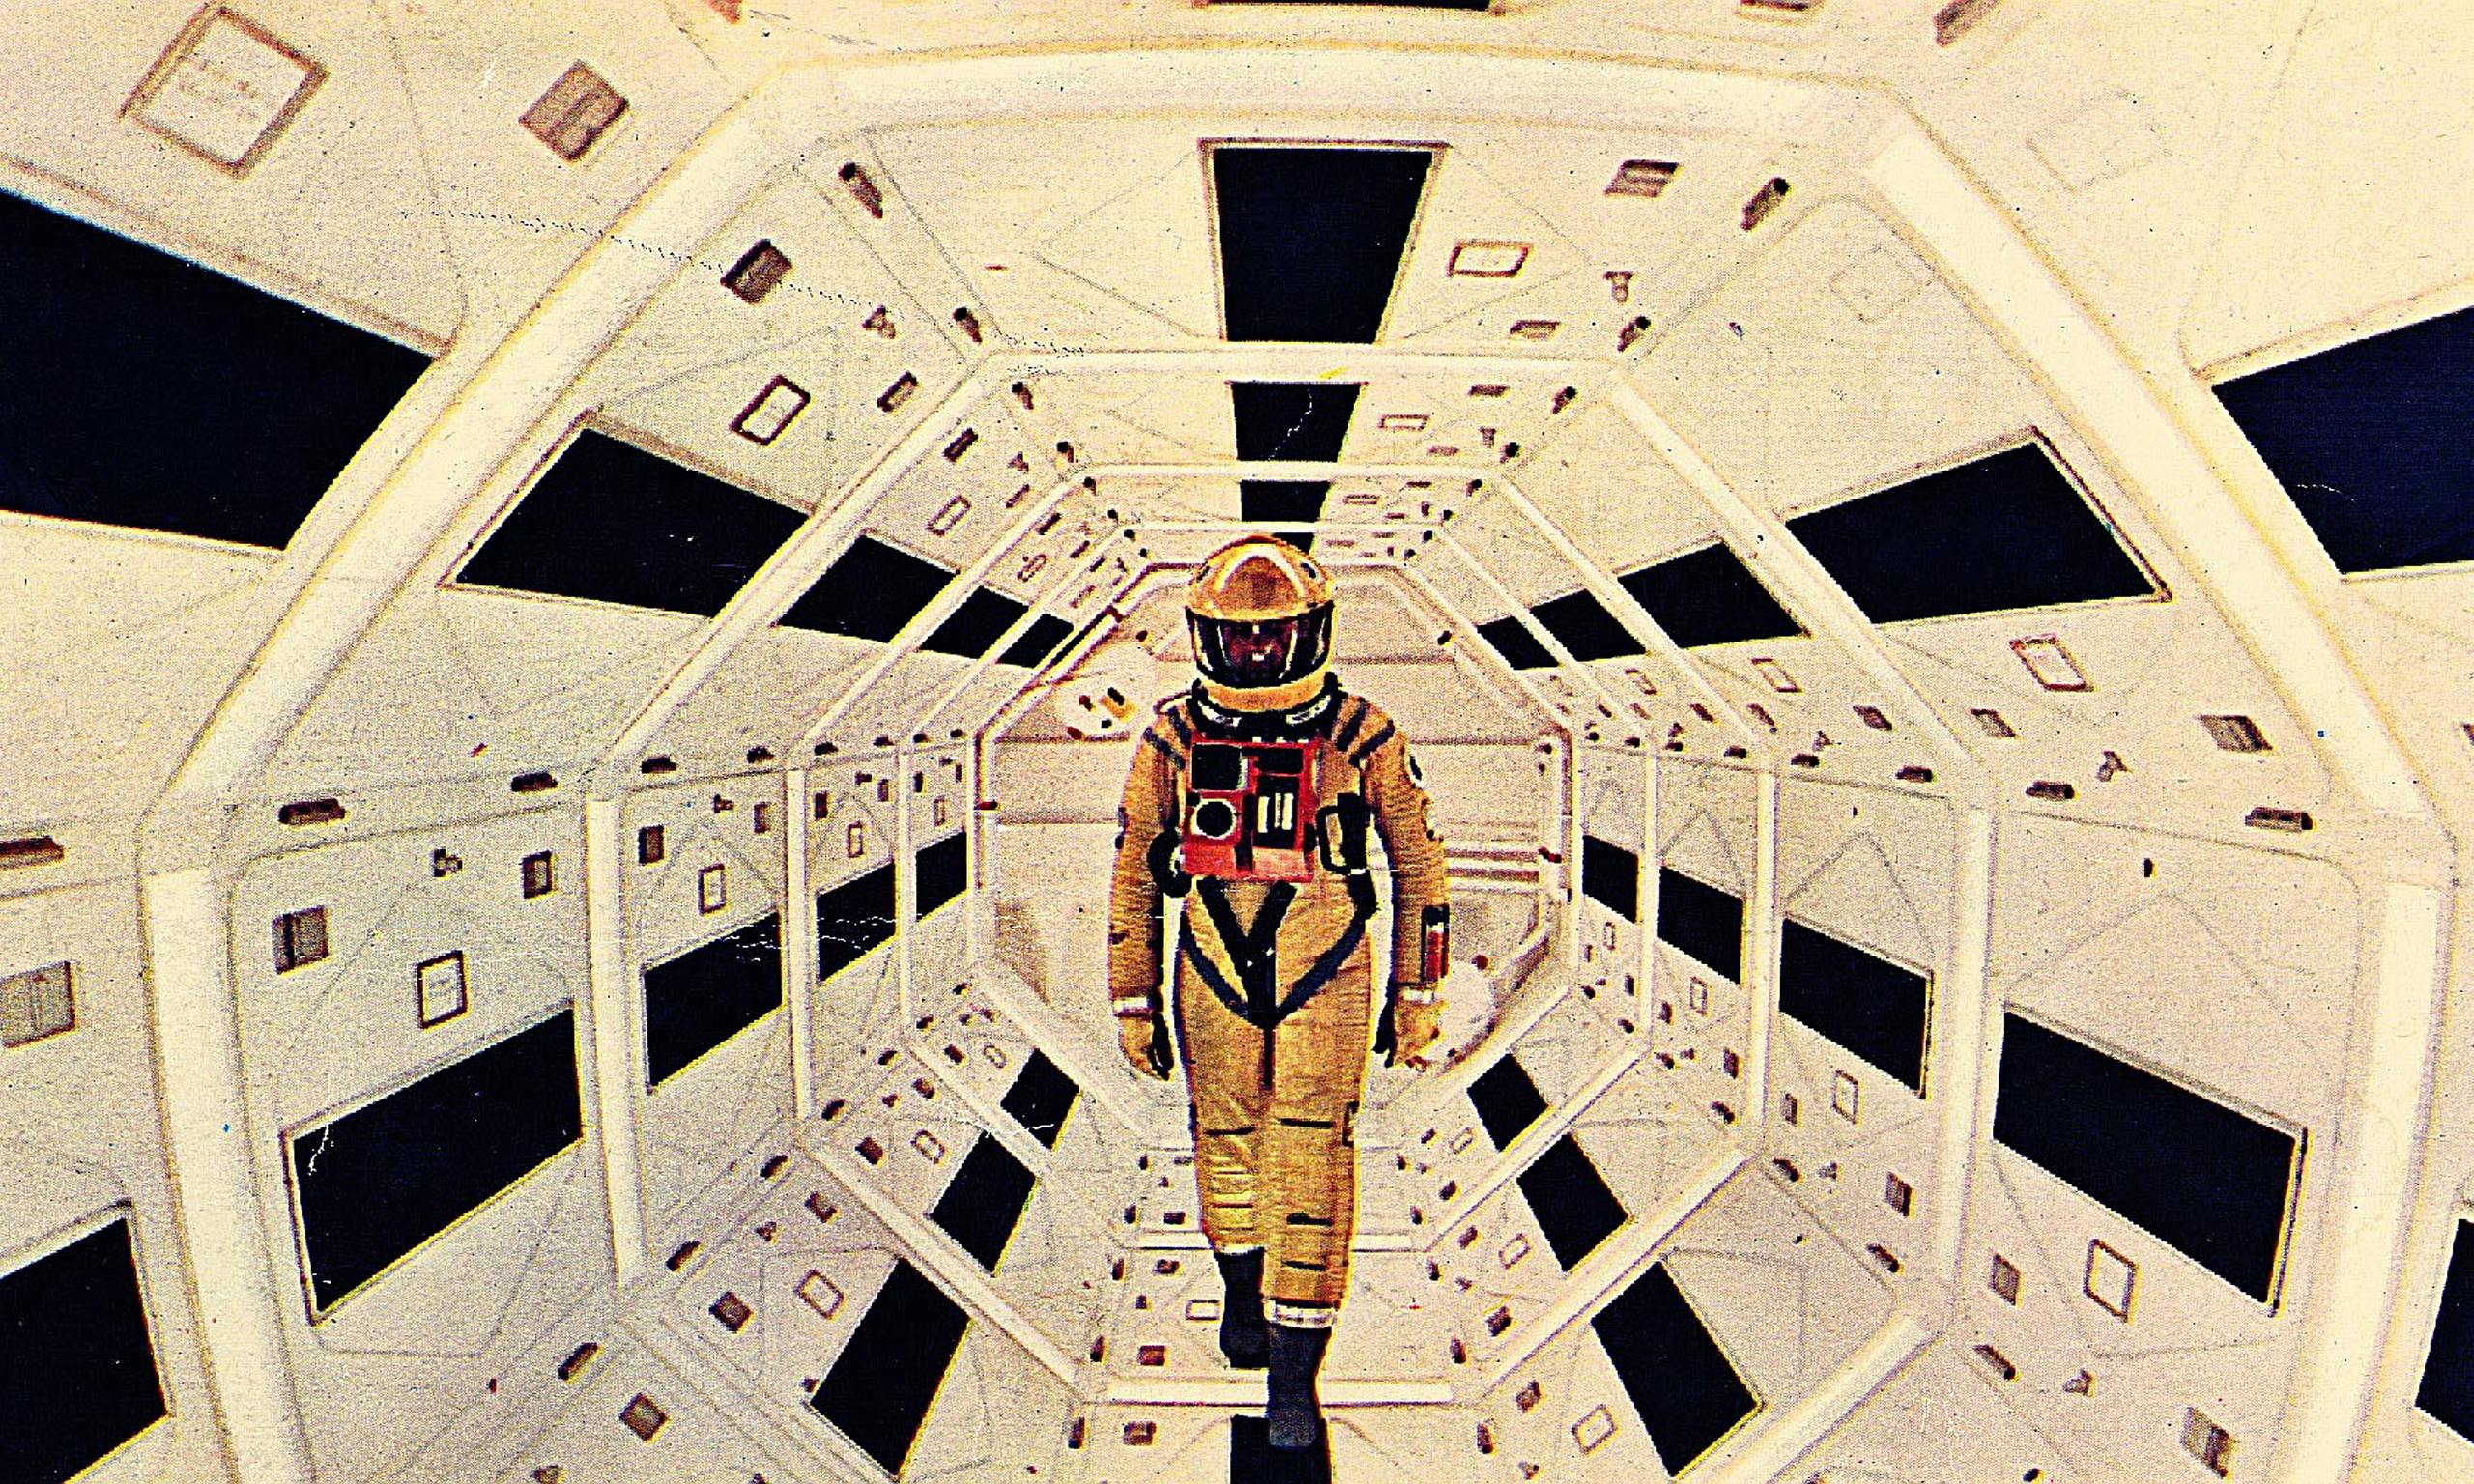 anti technology in stanley kubricks 2001 a The making of stanley kubrick's 2001: a space odyssey is a marvel, a literary piece that's as fascinating as the film it's covering and it offers readers a splendid at look one of the greatest films of the 20th century breathtaking.